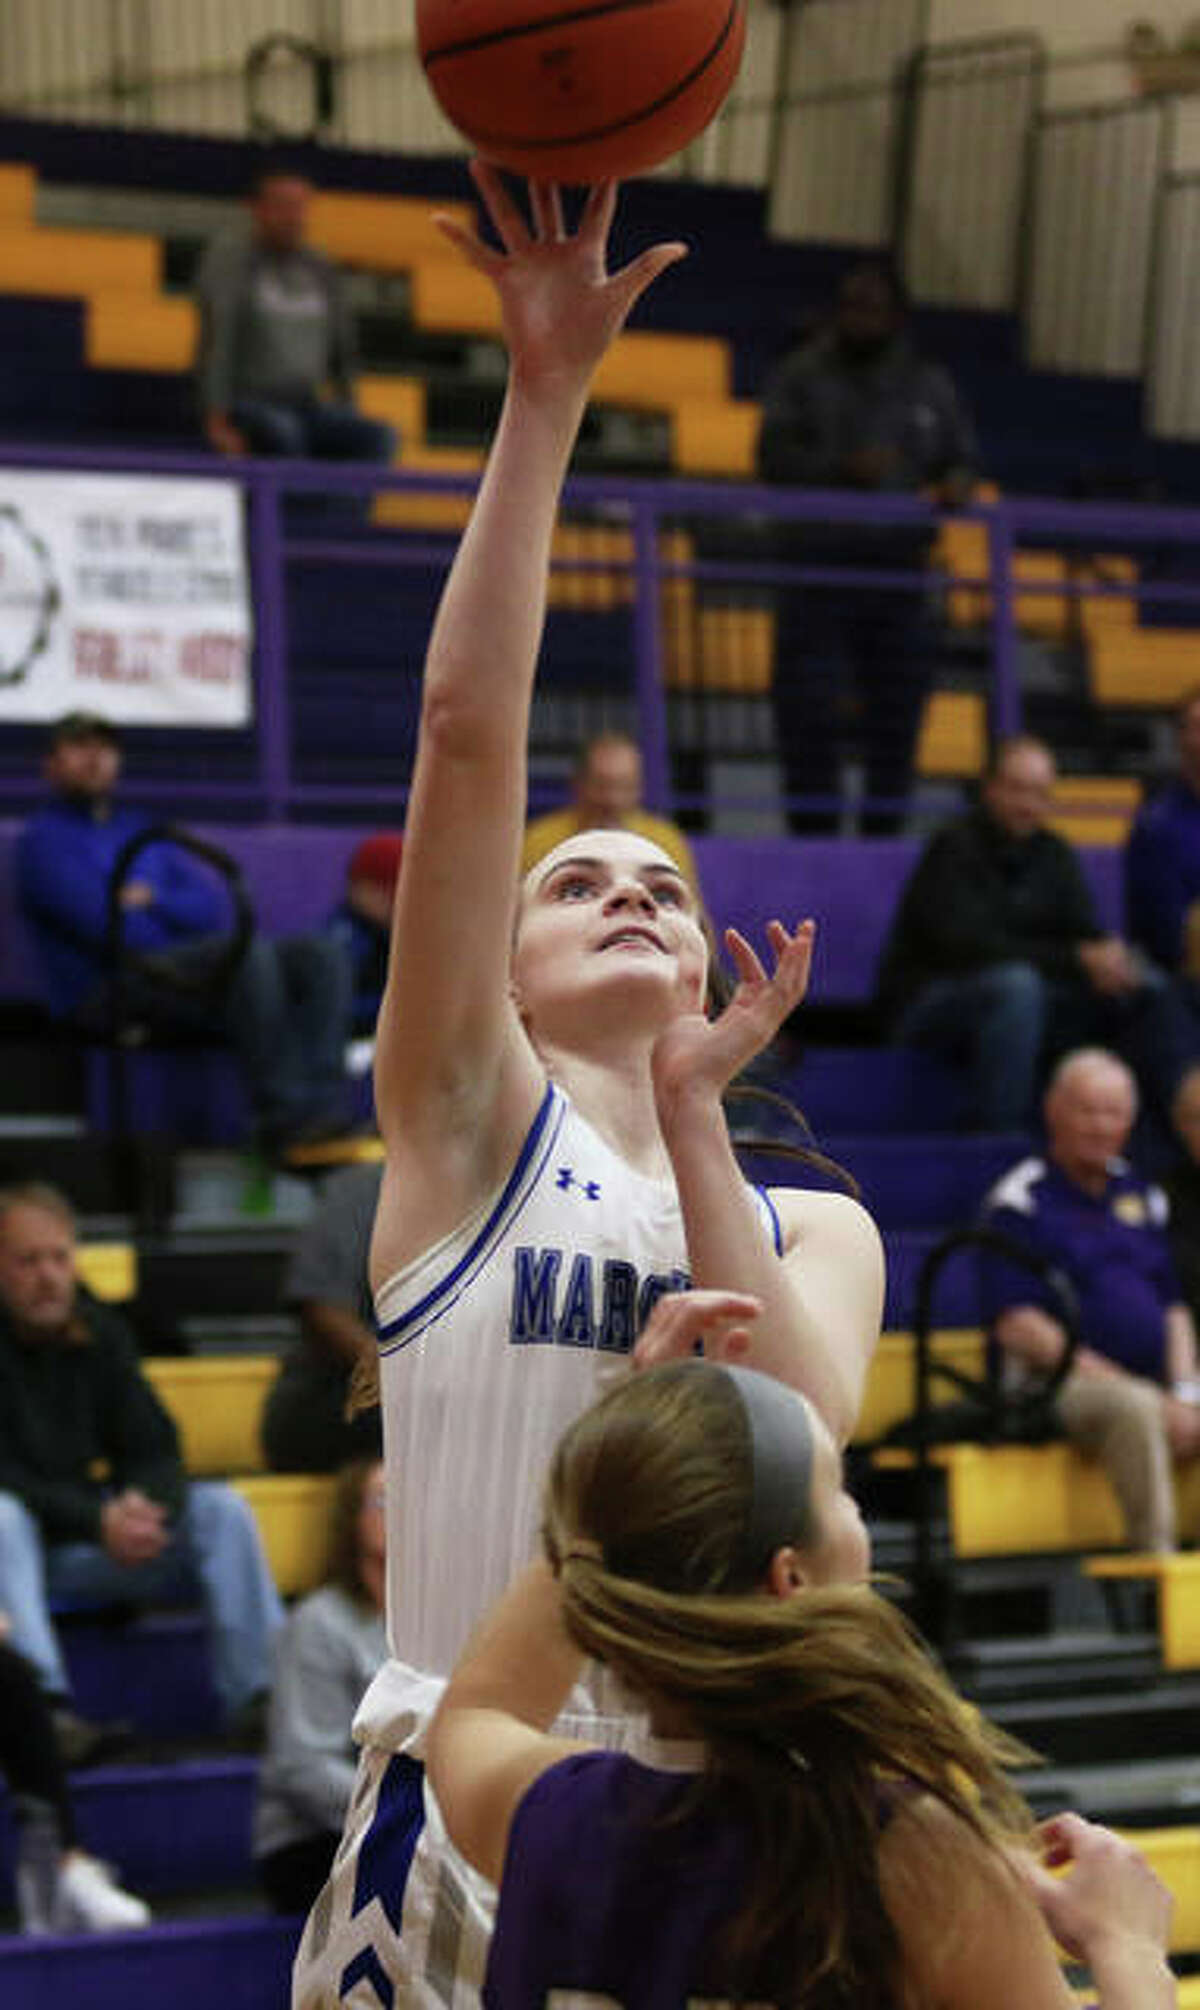 Marquette Catholic's Abby Williams shoots over a Breese Central defender during a game at the CM Shootout on Dec. 20 in Bethalto. Williams underwent surgery to repair a torn ACL on Thursday and will miss the rest of her sophomore season with the Explorers.